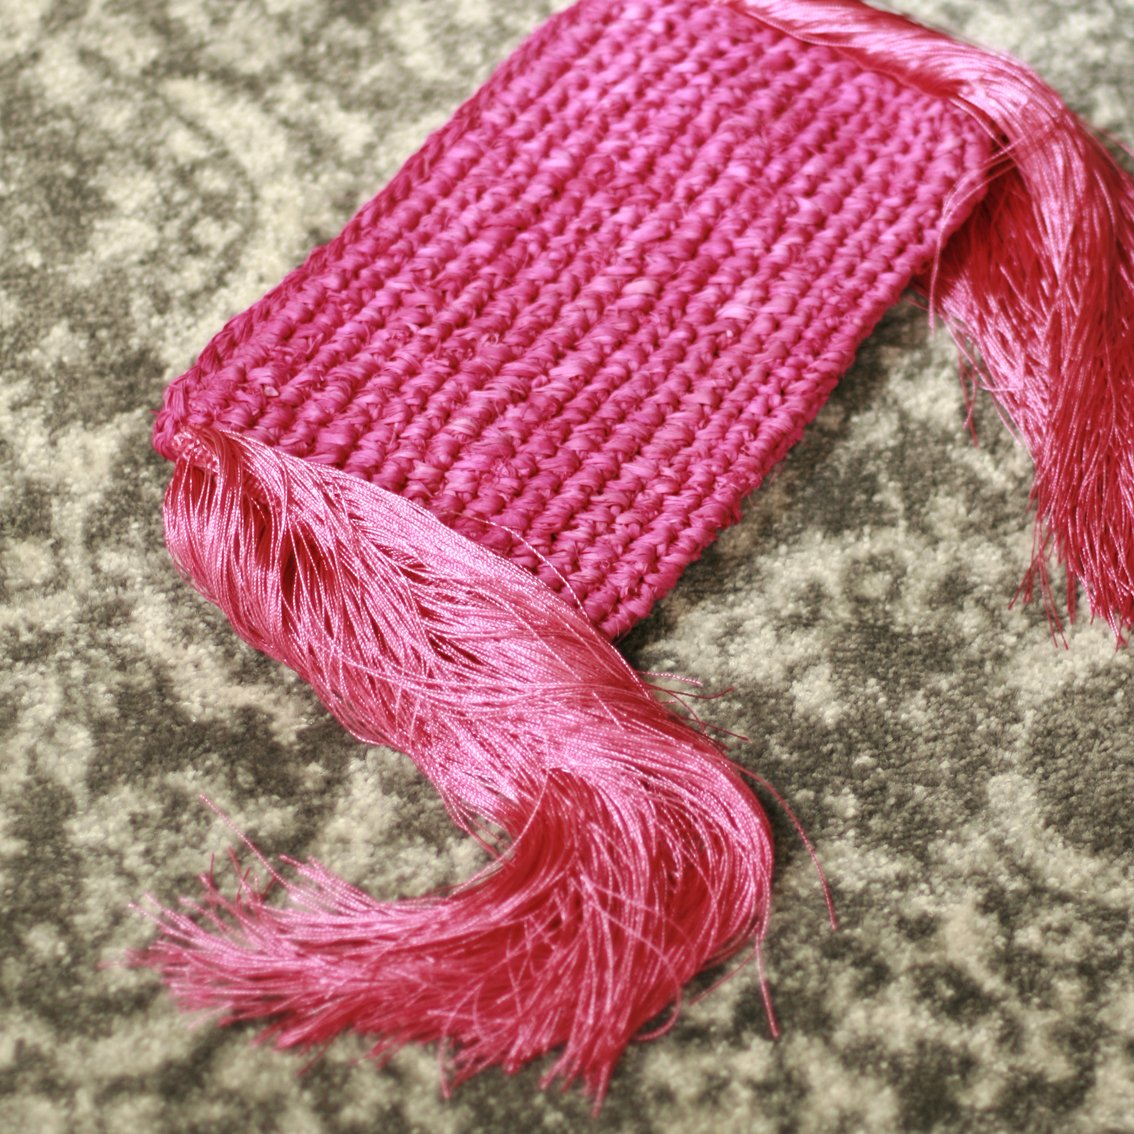 Canggu Fringe Raffia Straw Clutch, in Dragon Fruit Pink